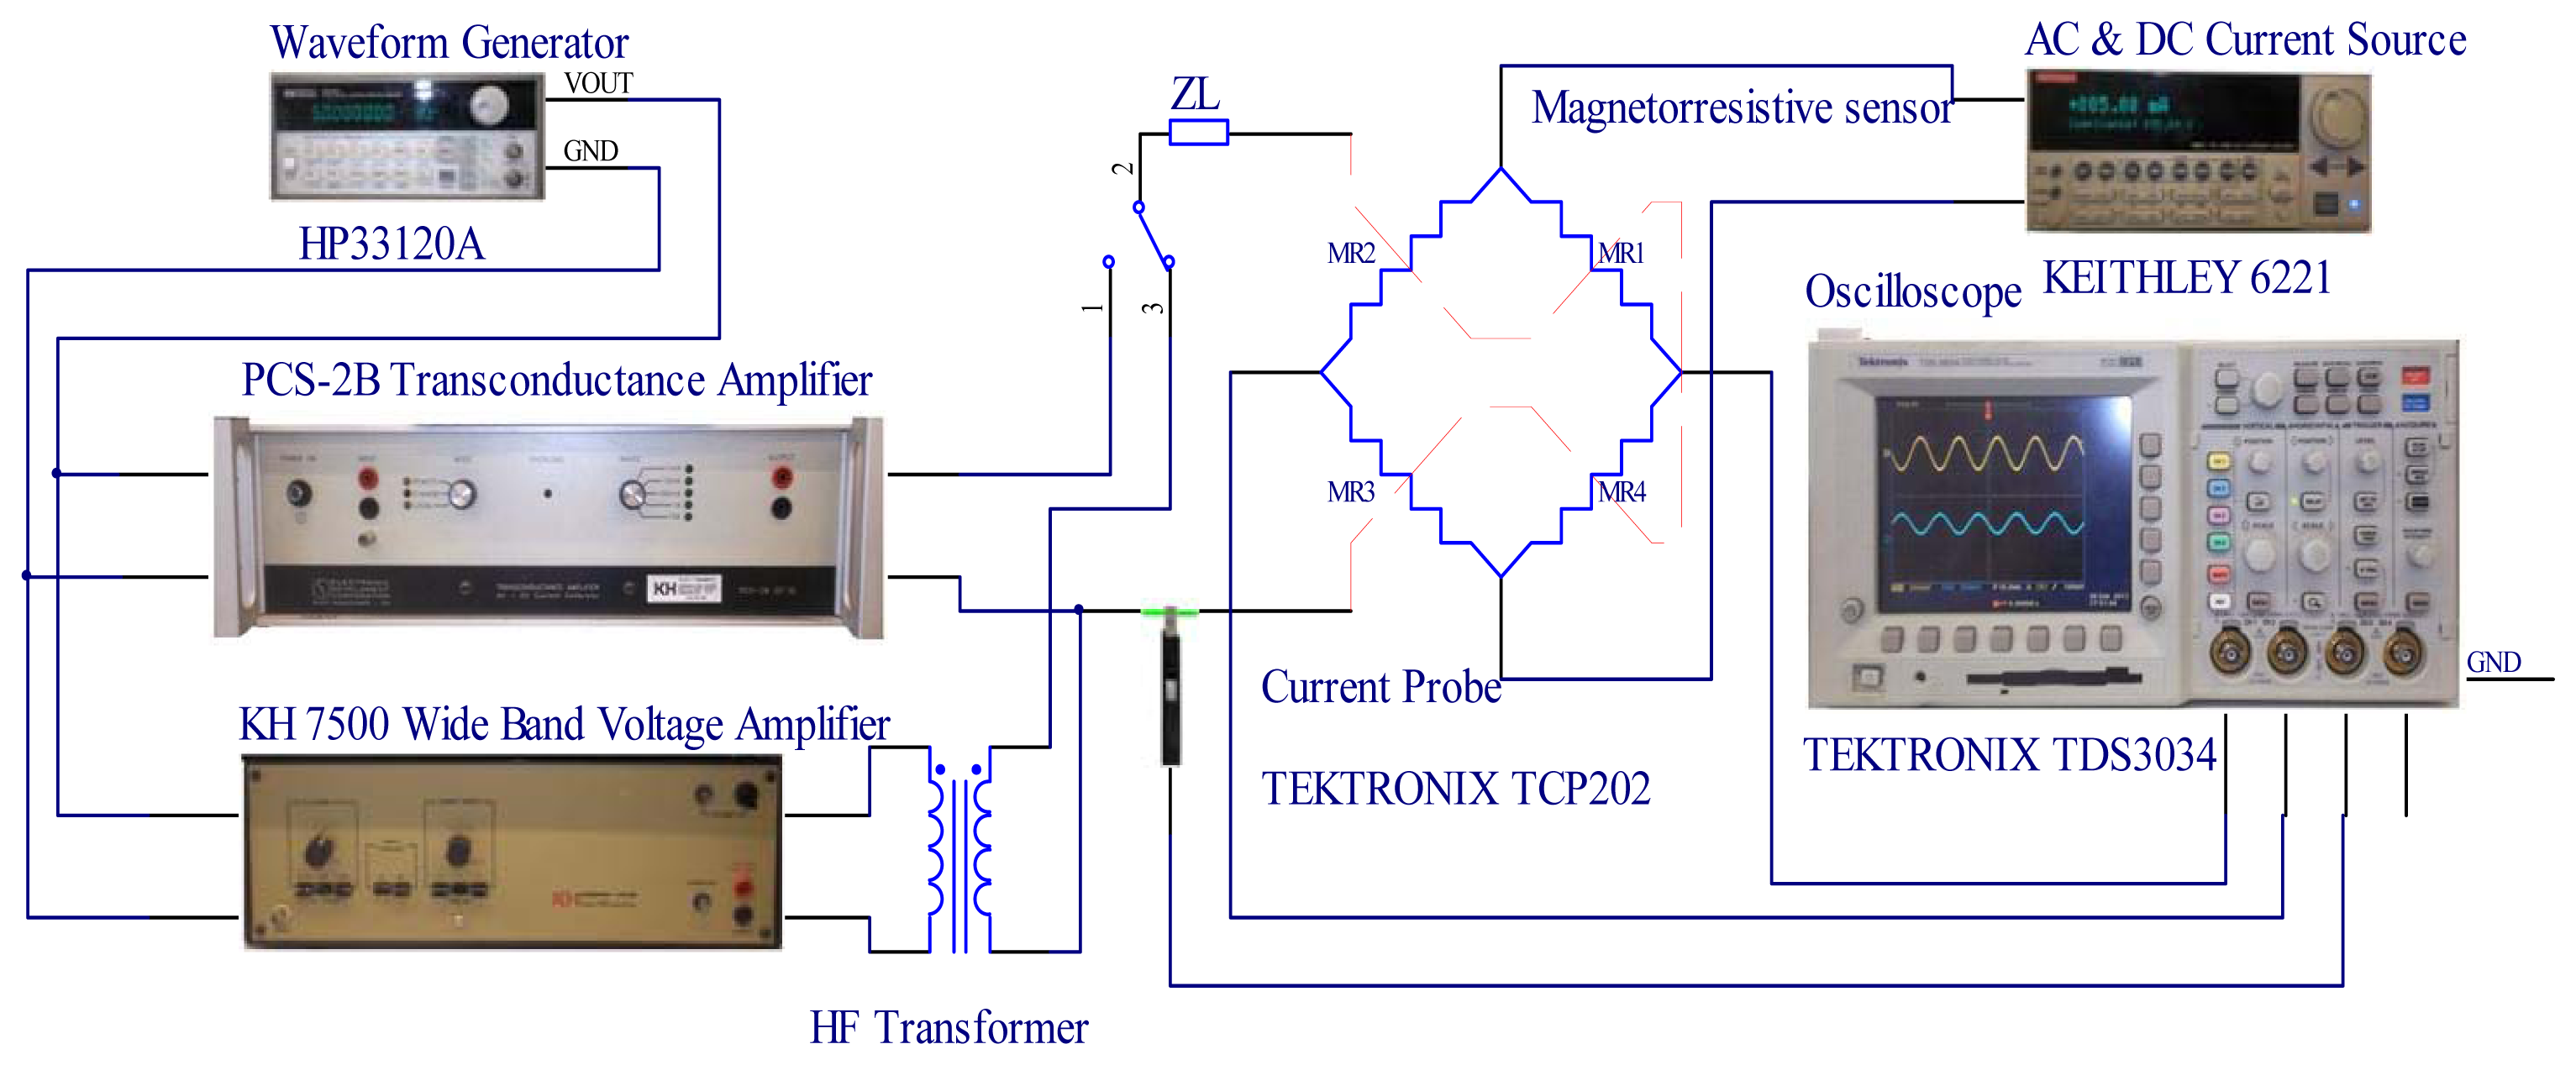 Sensors Free Full Text Fractional Modeling Of The Ac Large Converter With Sample And Hold Circuit In Current Images Frompo 13 17516f7 1024